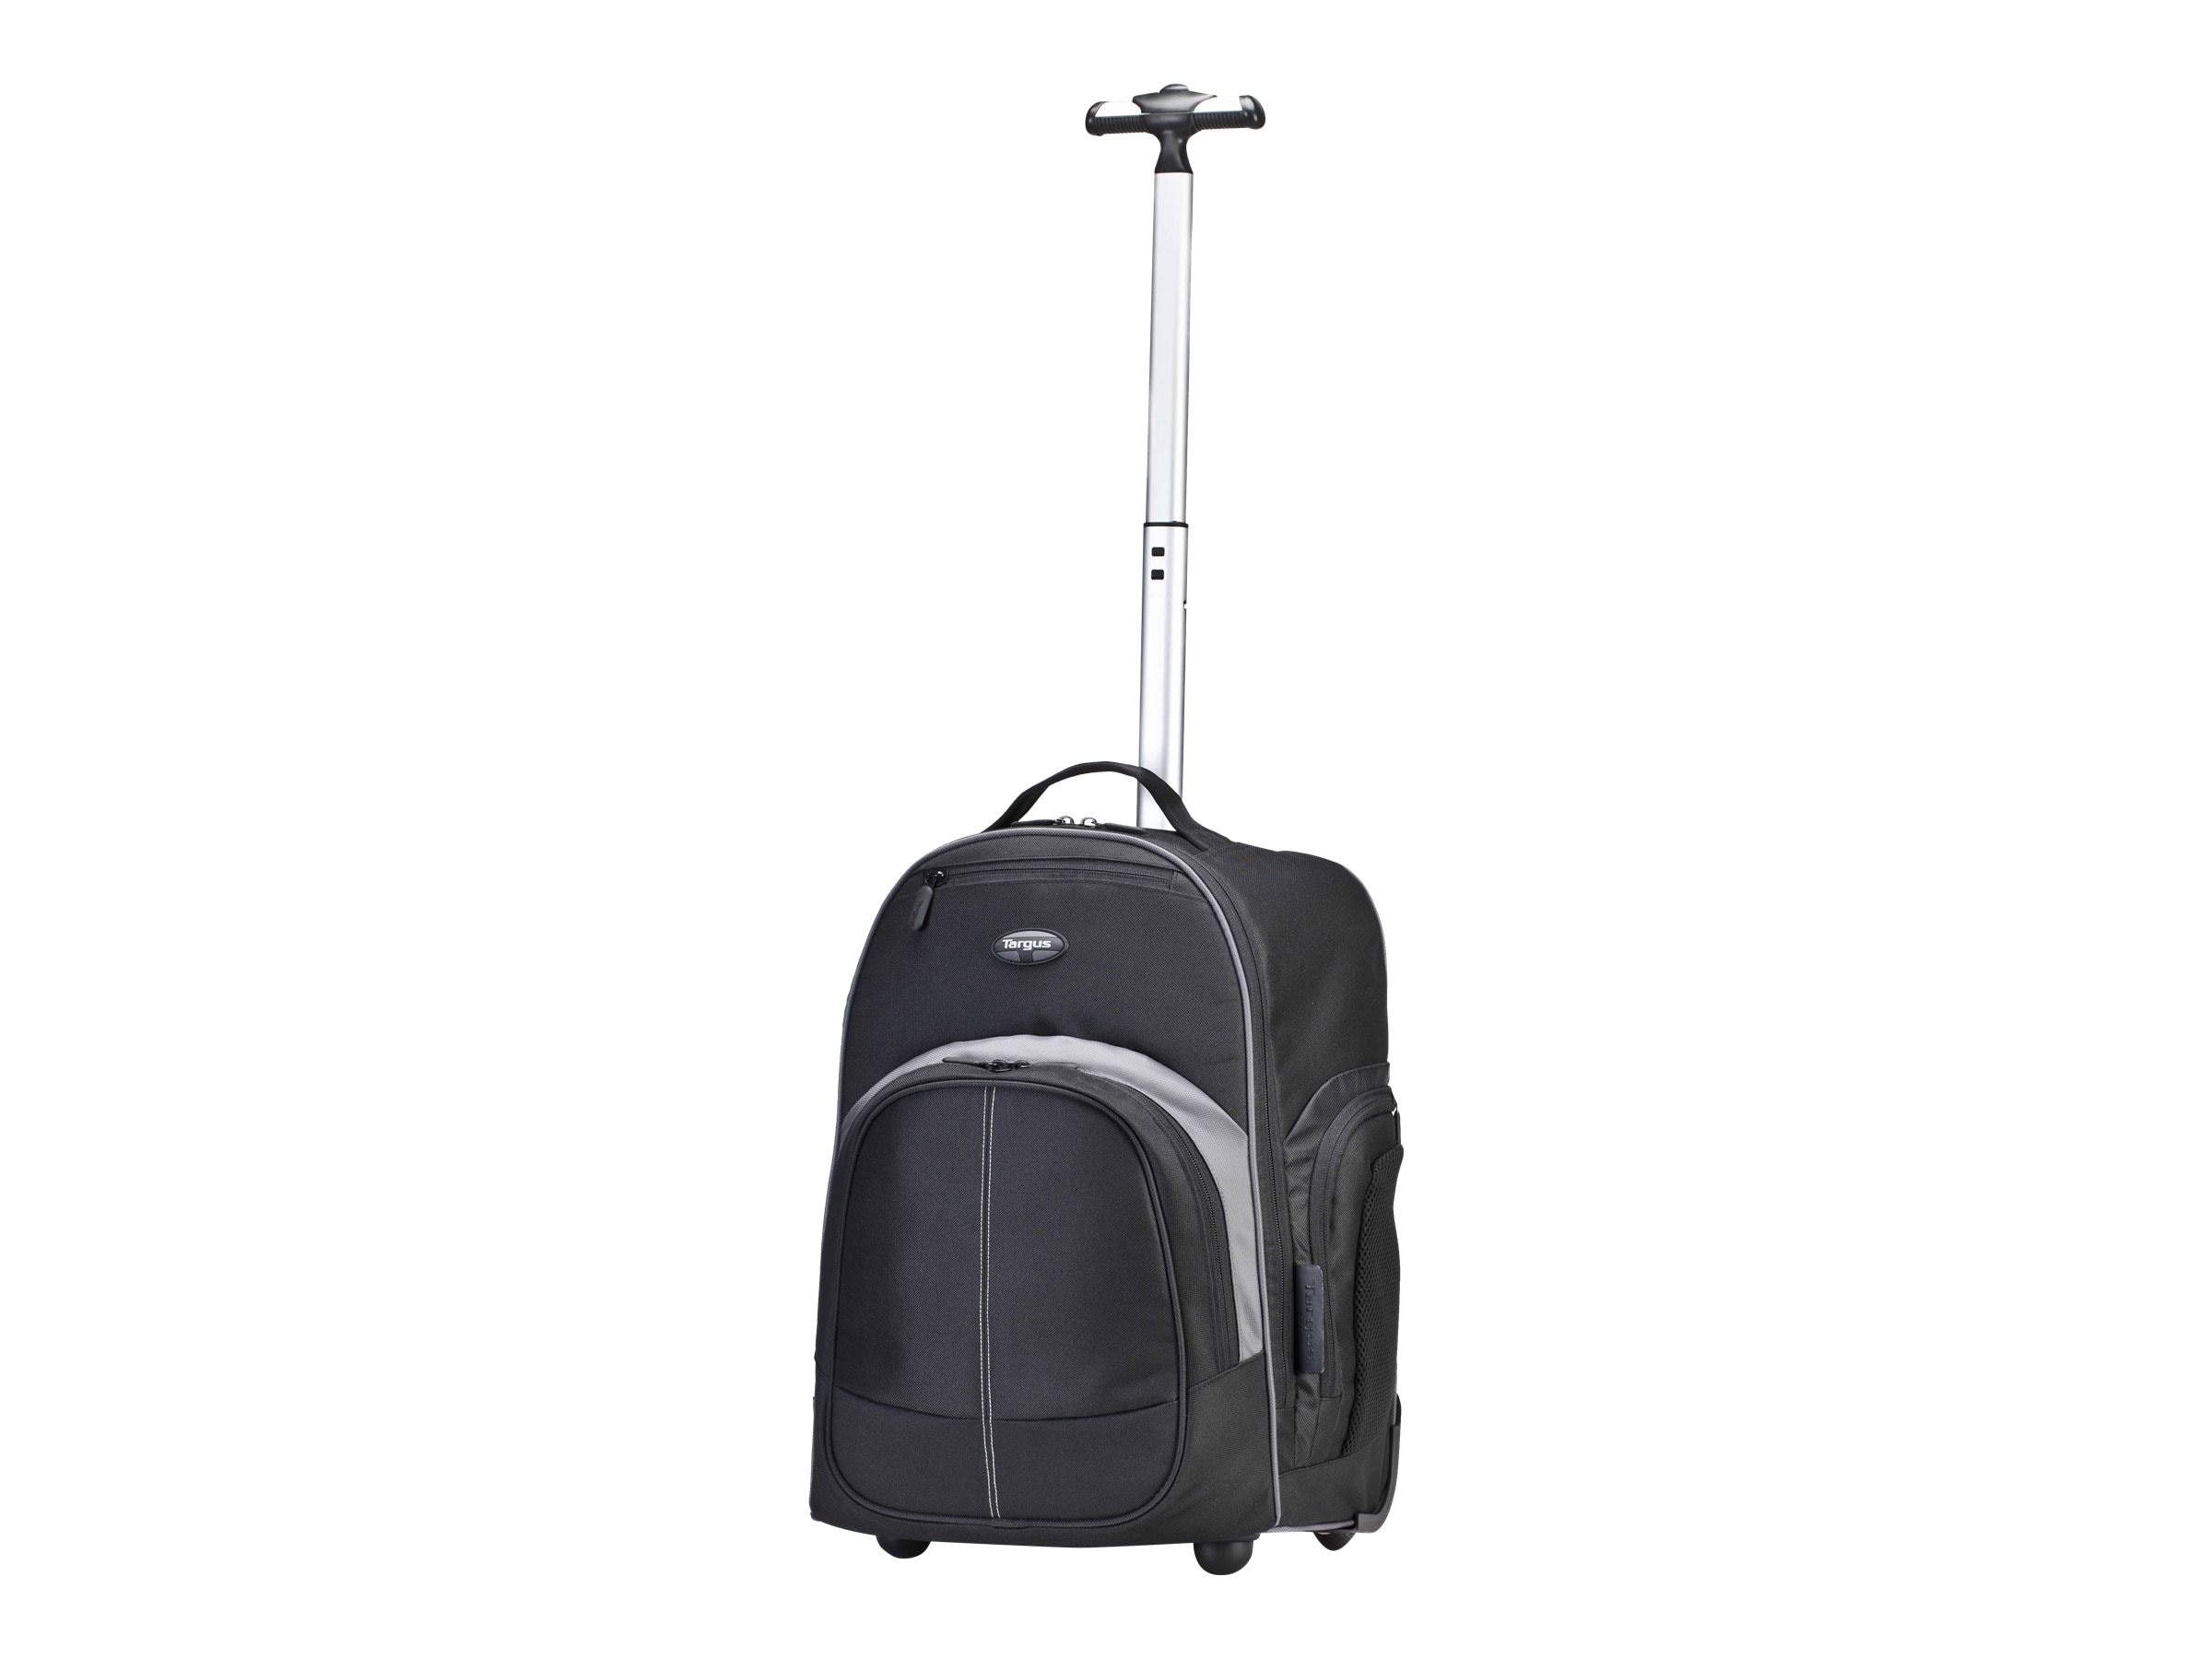 Targus Compact Rolling Backpack, Black, TSB750US, 13800373, Carrying Cases - Notebook